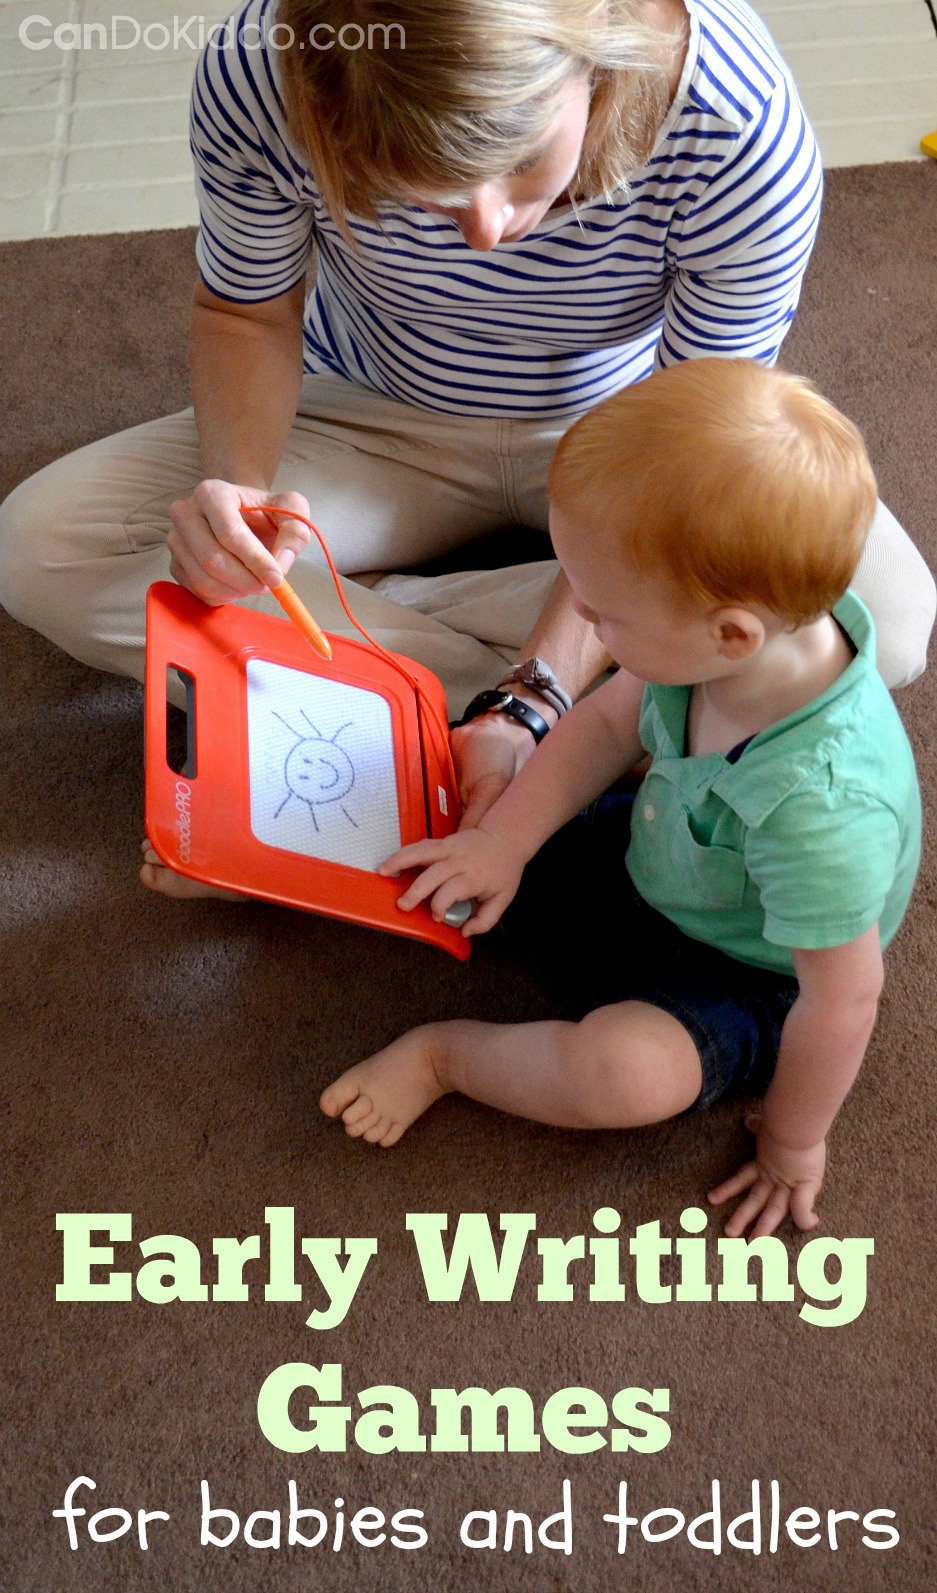 Tips and tricks for playing with crayon-eaters and paper-rippers. Baby and toddler play activities. CanDo Kiddo